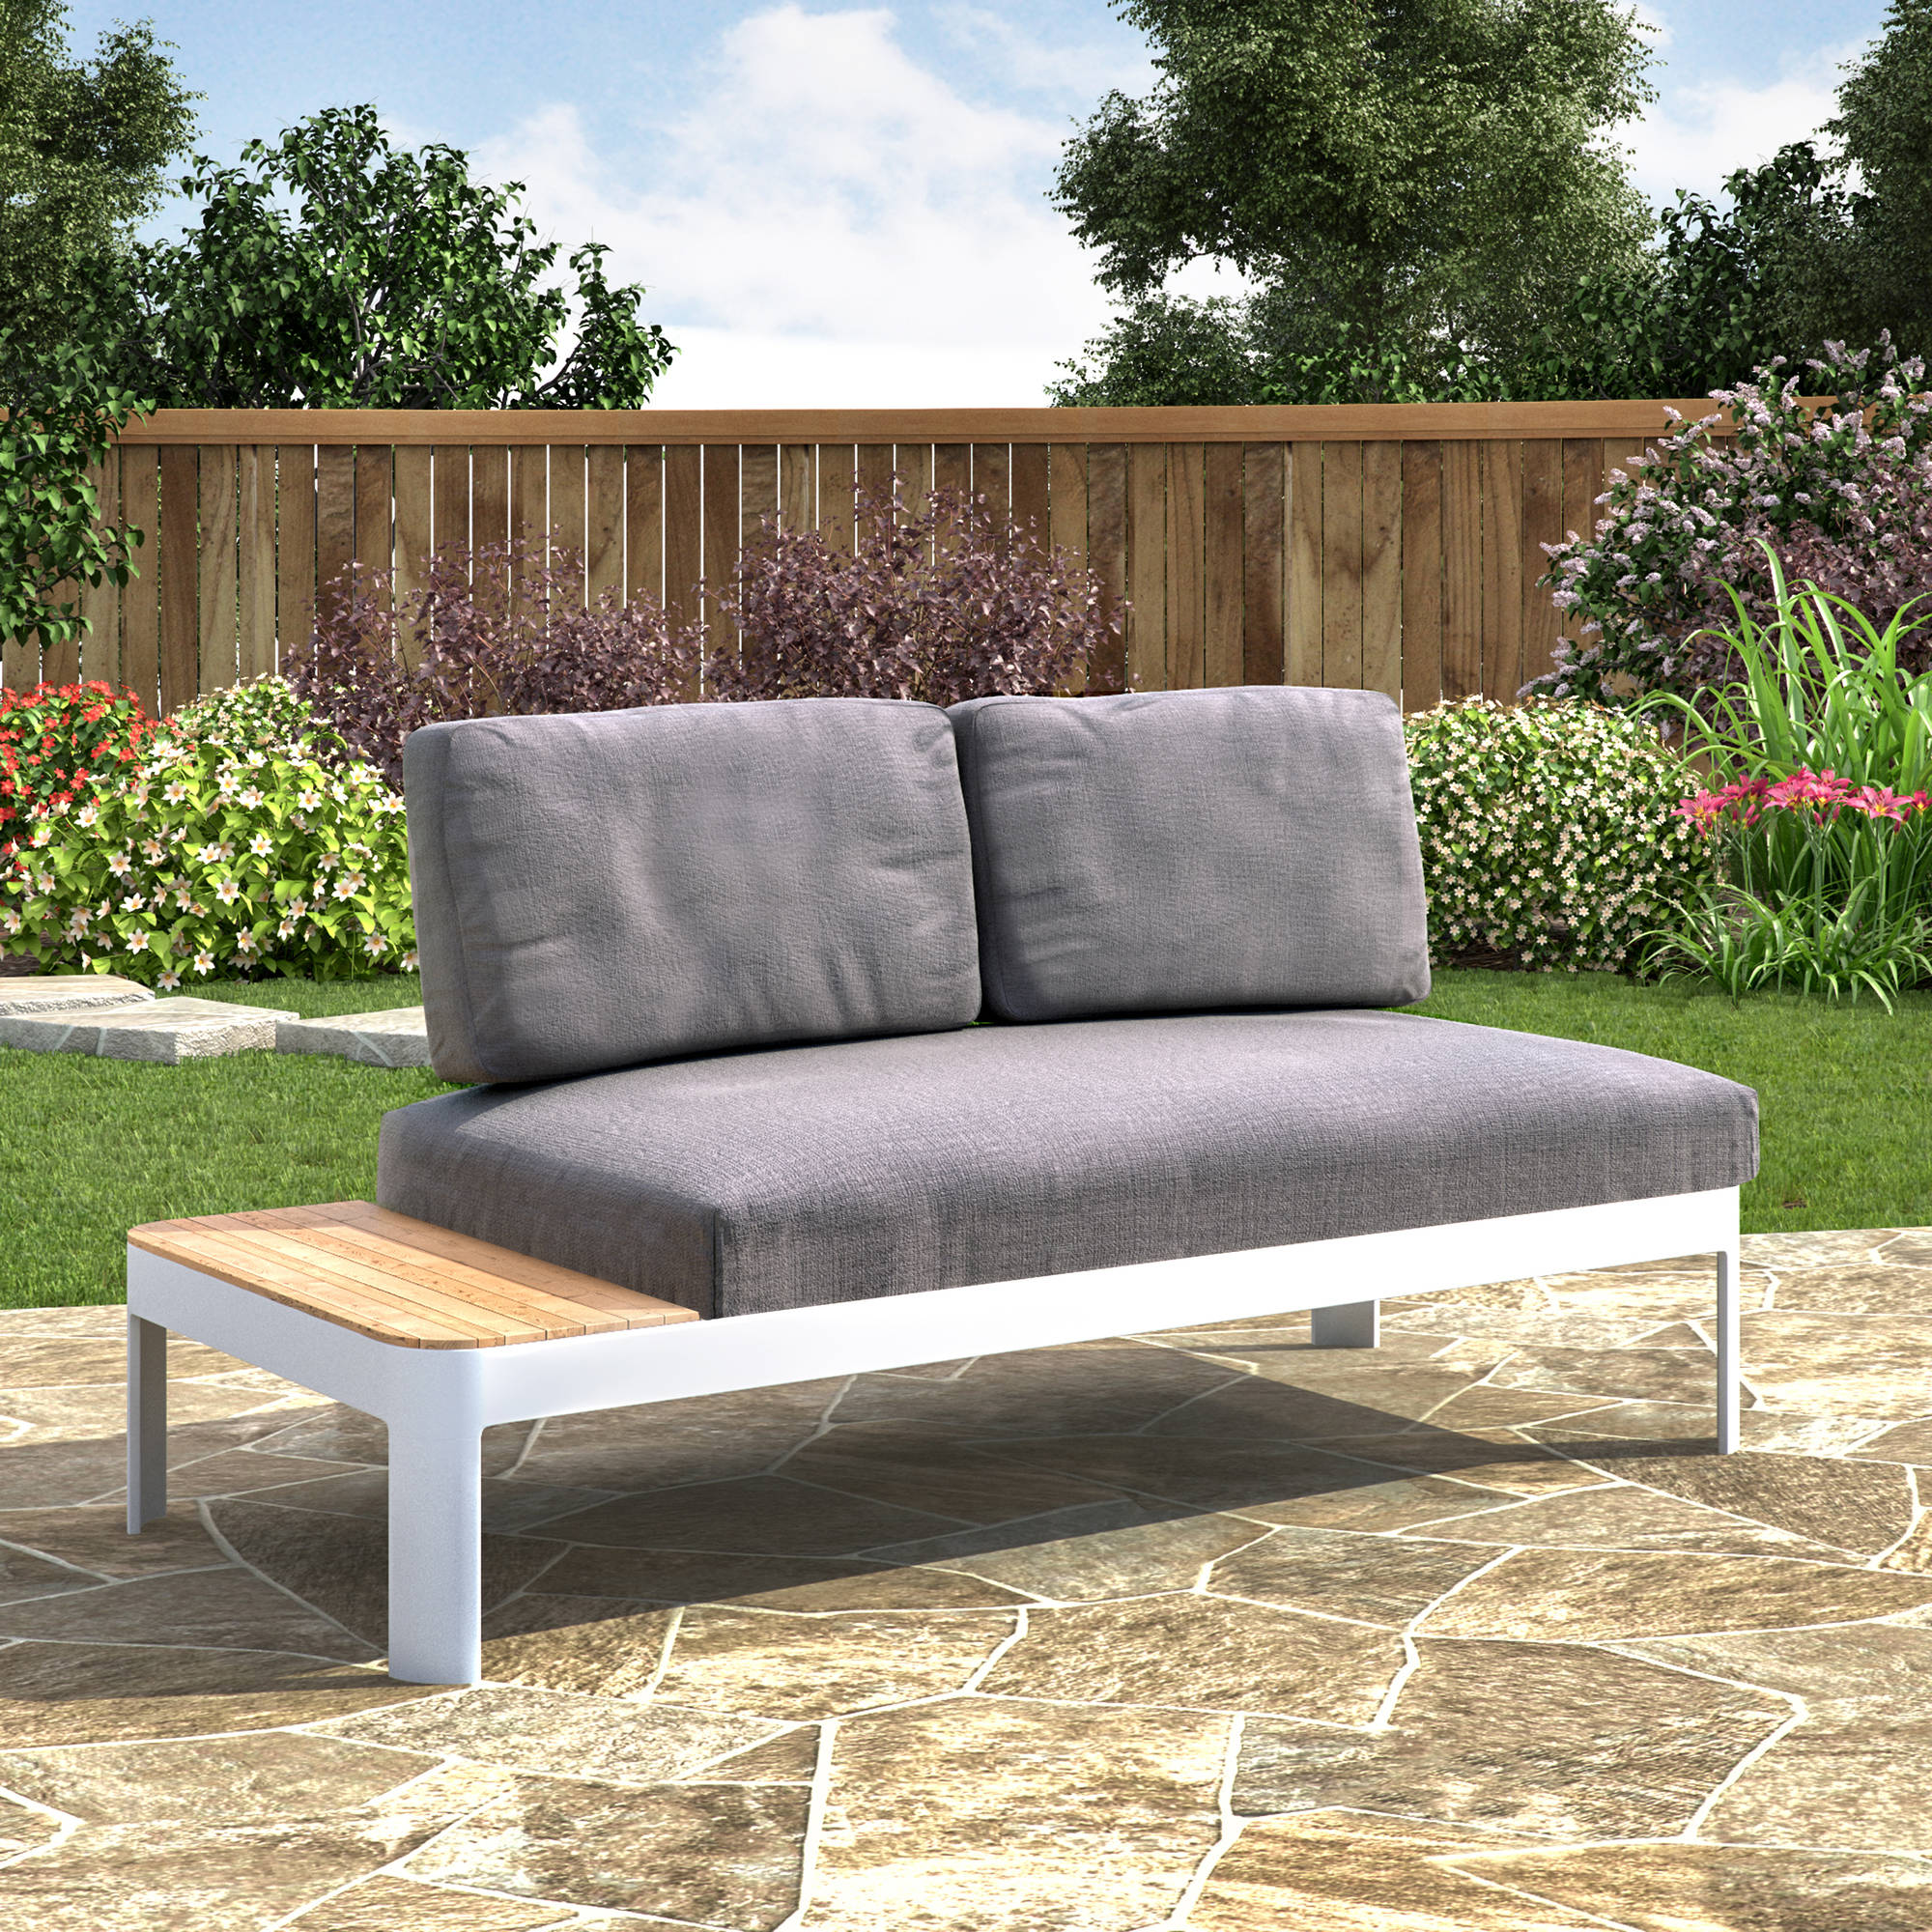 Southern Enterprises Cartella Aluminum Outdoor Convertible Lounger/Modular Loveseat with Cushions, Gray